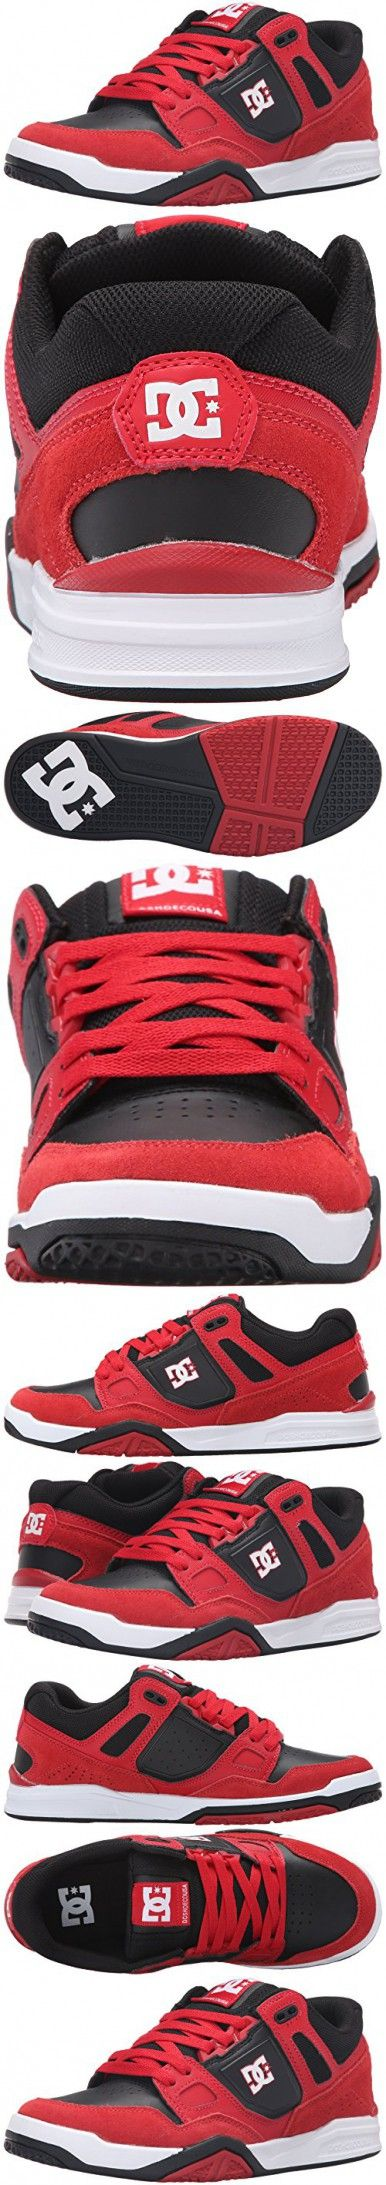 DC Men's Stag 2 Skate Shoe, Red/Black, 8.5 M US